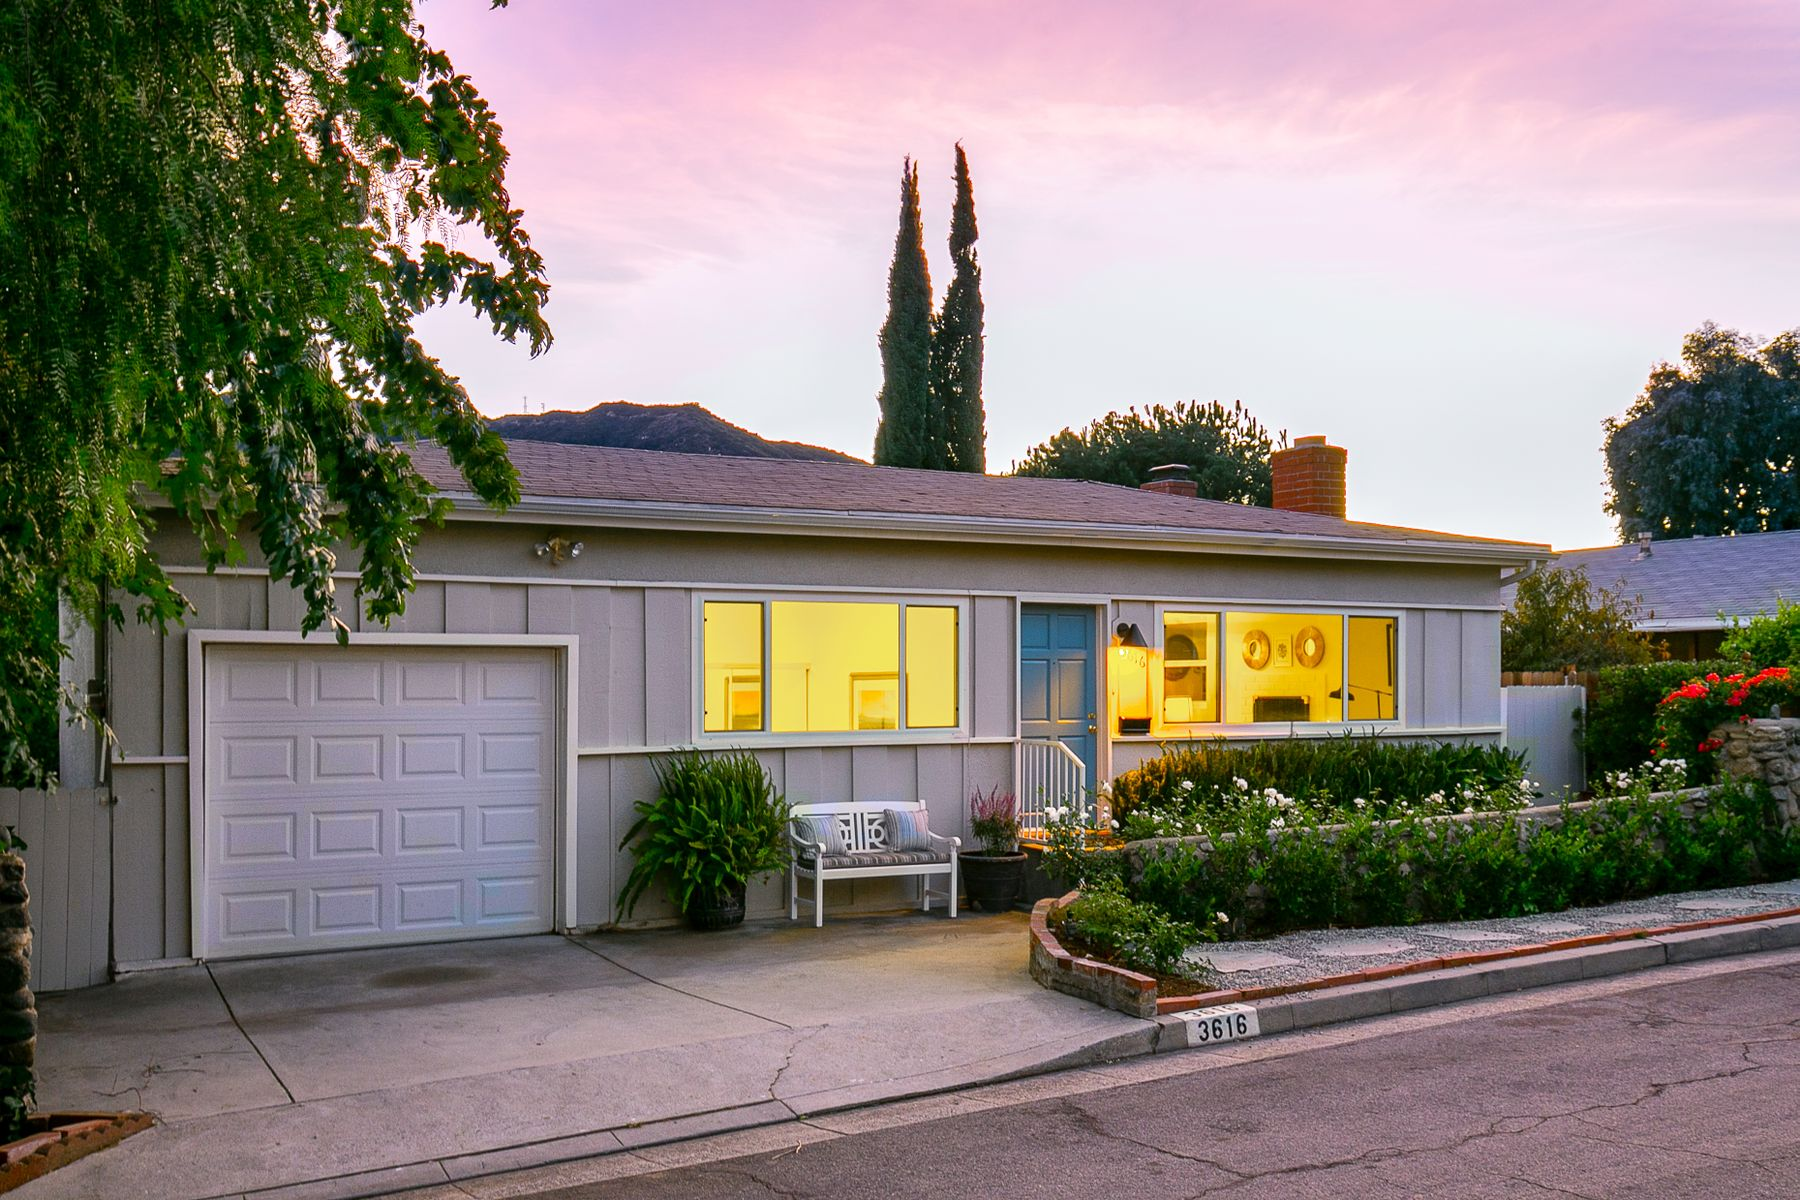 Single Family Homes for Sale at Romantic Cottage 3616 3rd Avenue La Crescenta, California 91214 United States